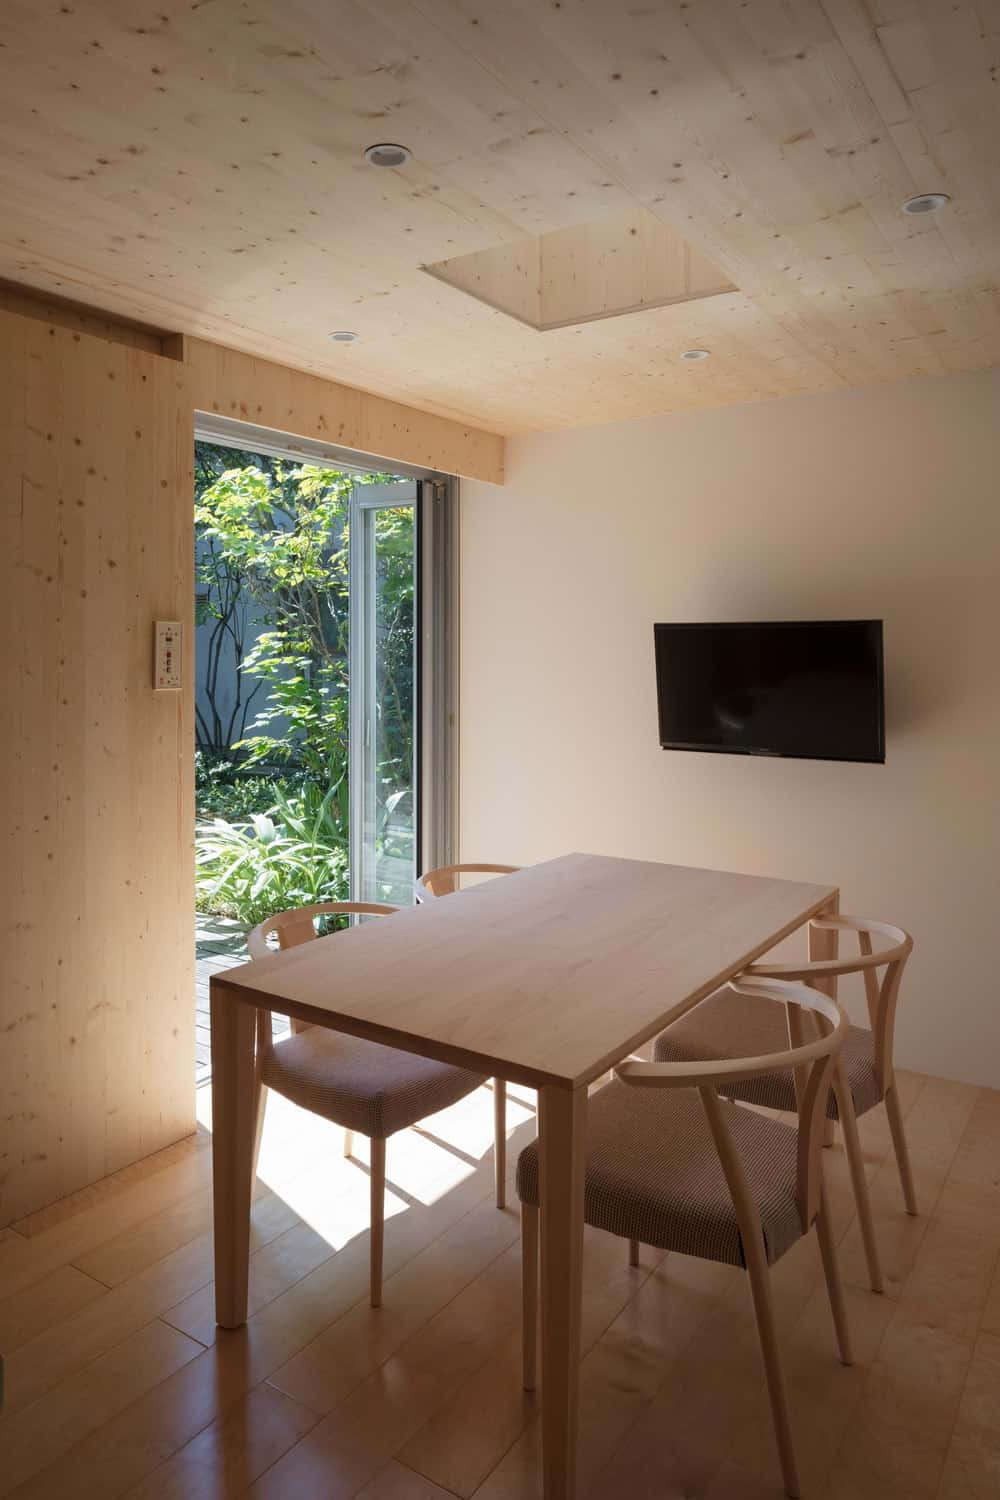 This is a close look at the simple minimalist dining area with consistent light wooden tones on its walls, ceiling, sliding door and the wooden dining table surrounded by wooden wishbone chairs.